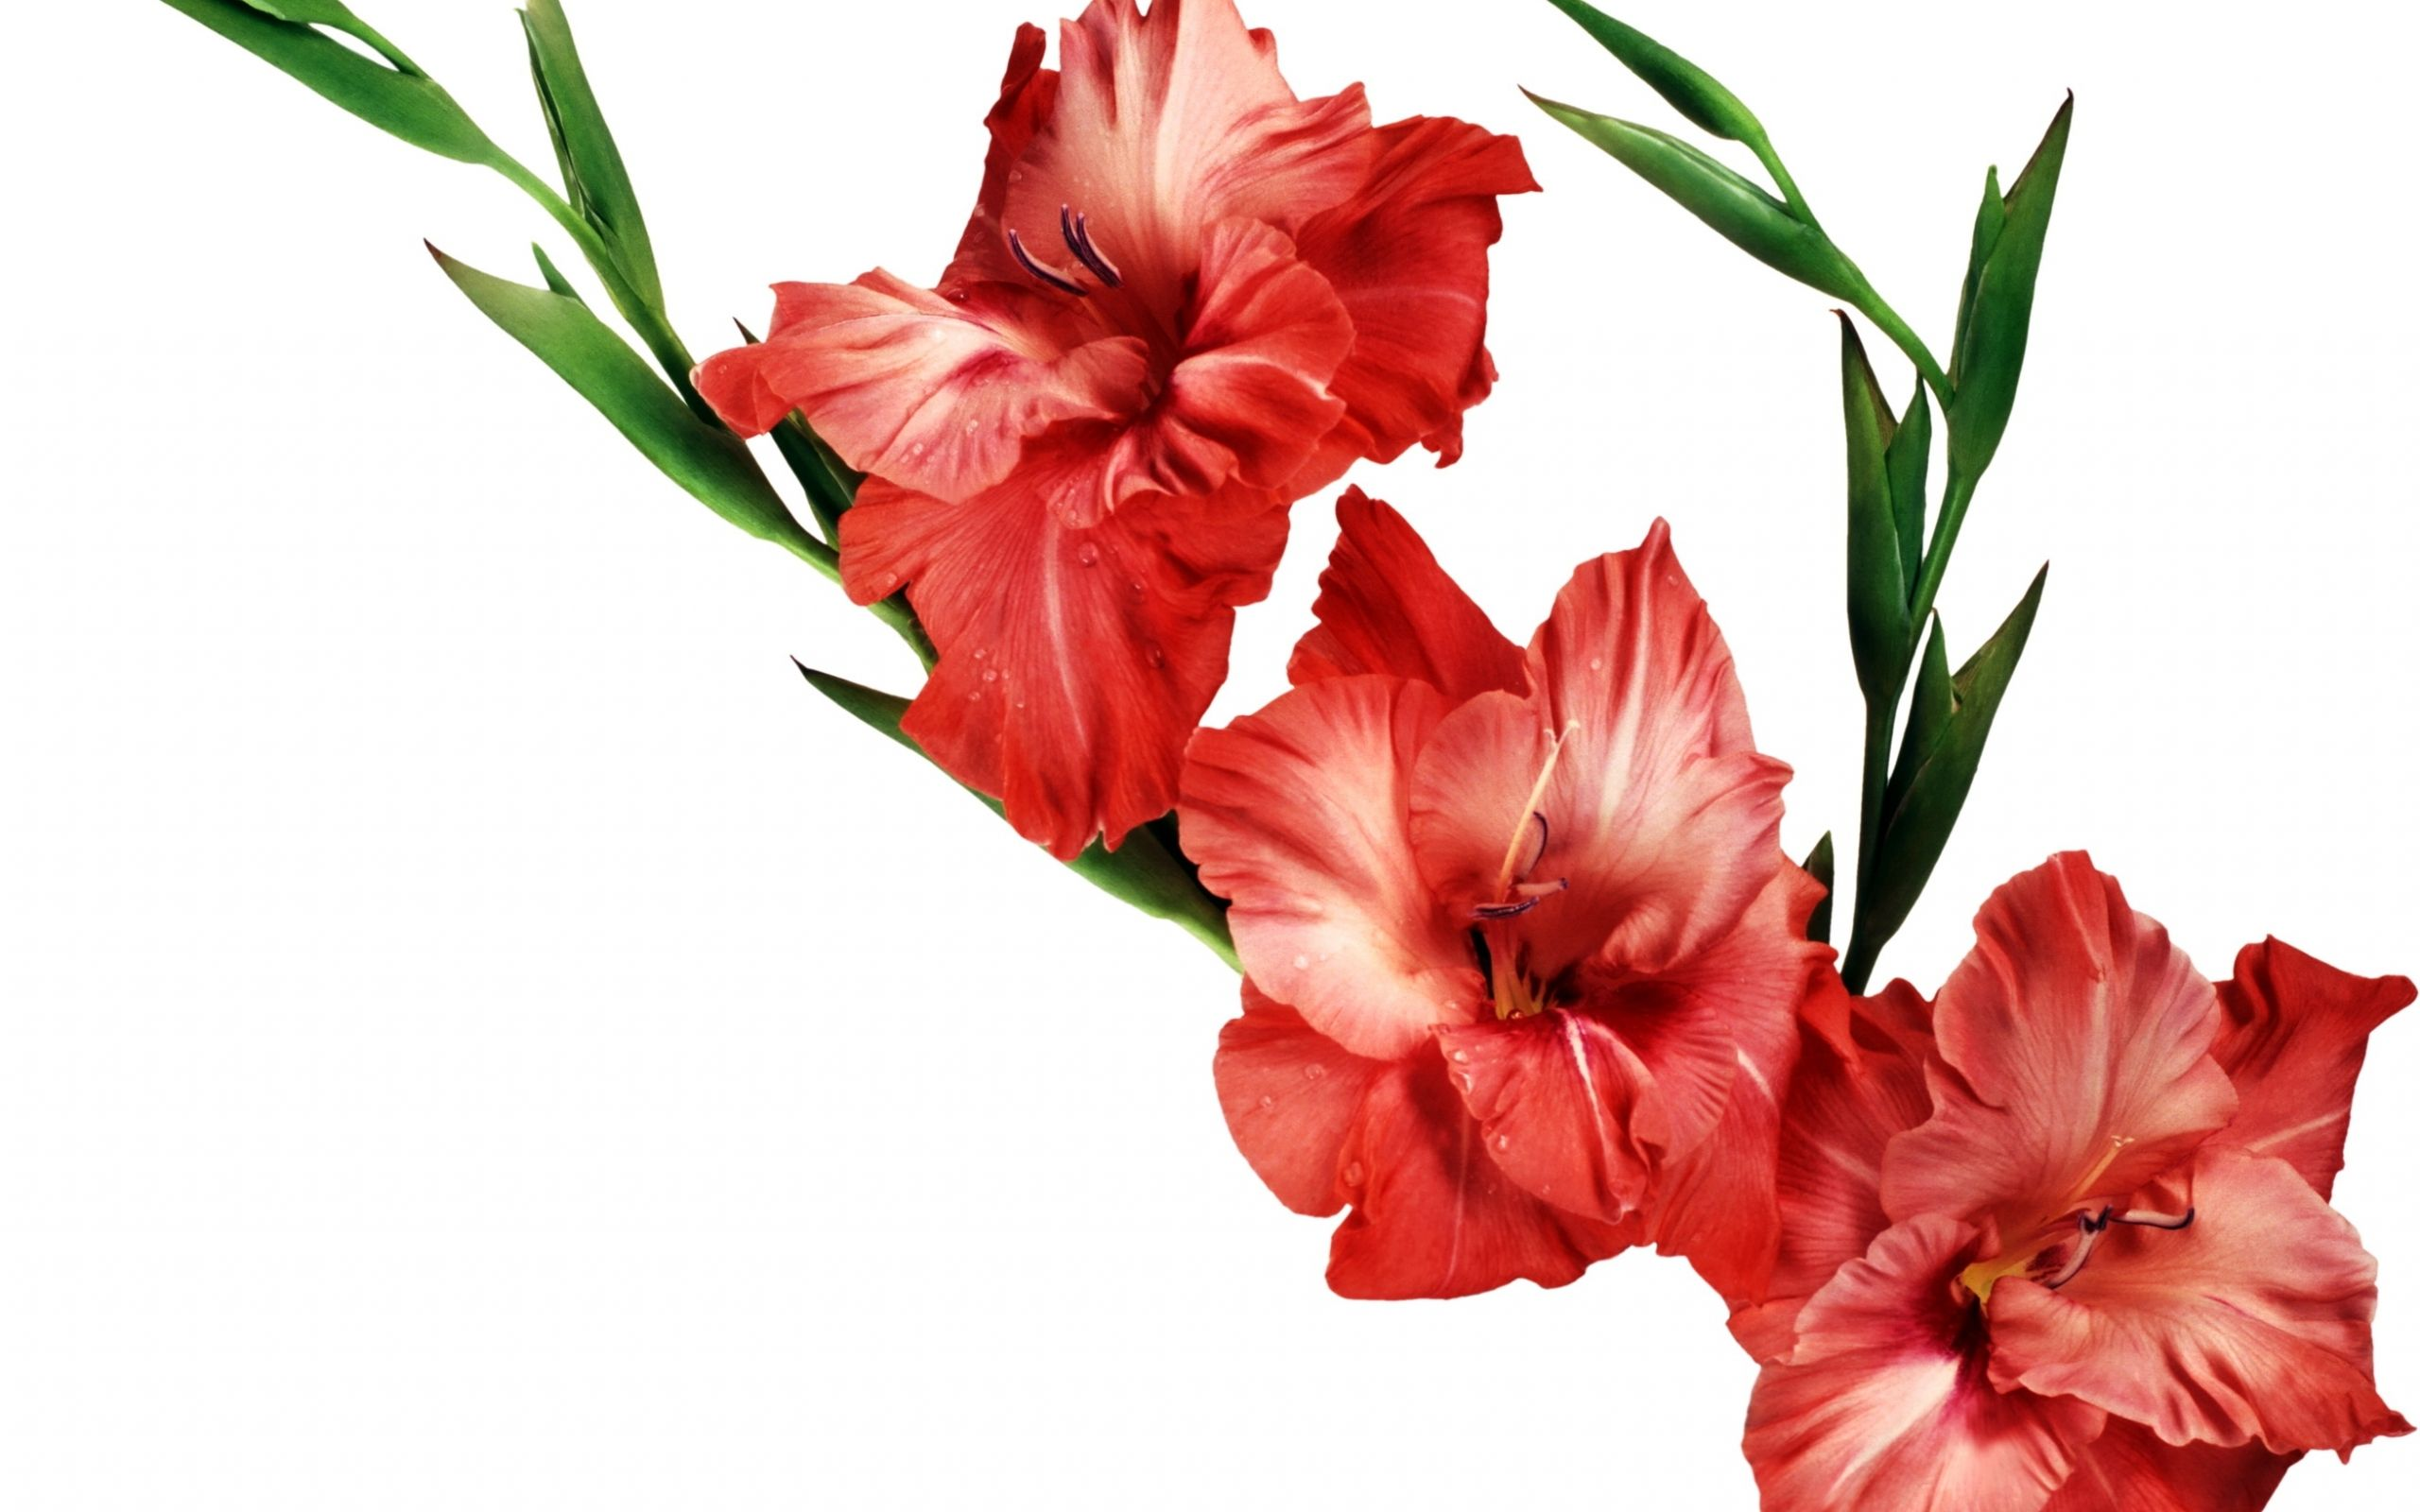 Wallpaper 2560x1600 Gladiolus Flower Red Leaves Background Download Widescreen Picture Image Wallpa Gladiolus Flower Birth Flowers Gladiolus Flower Tattoos